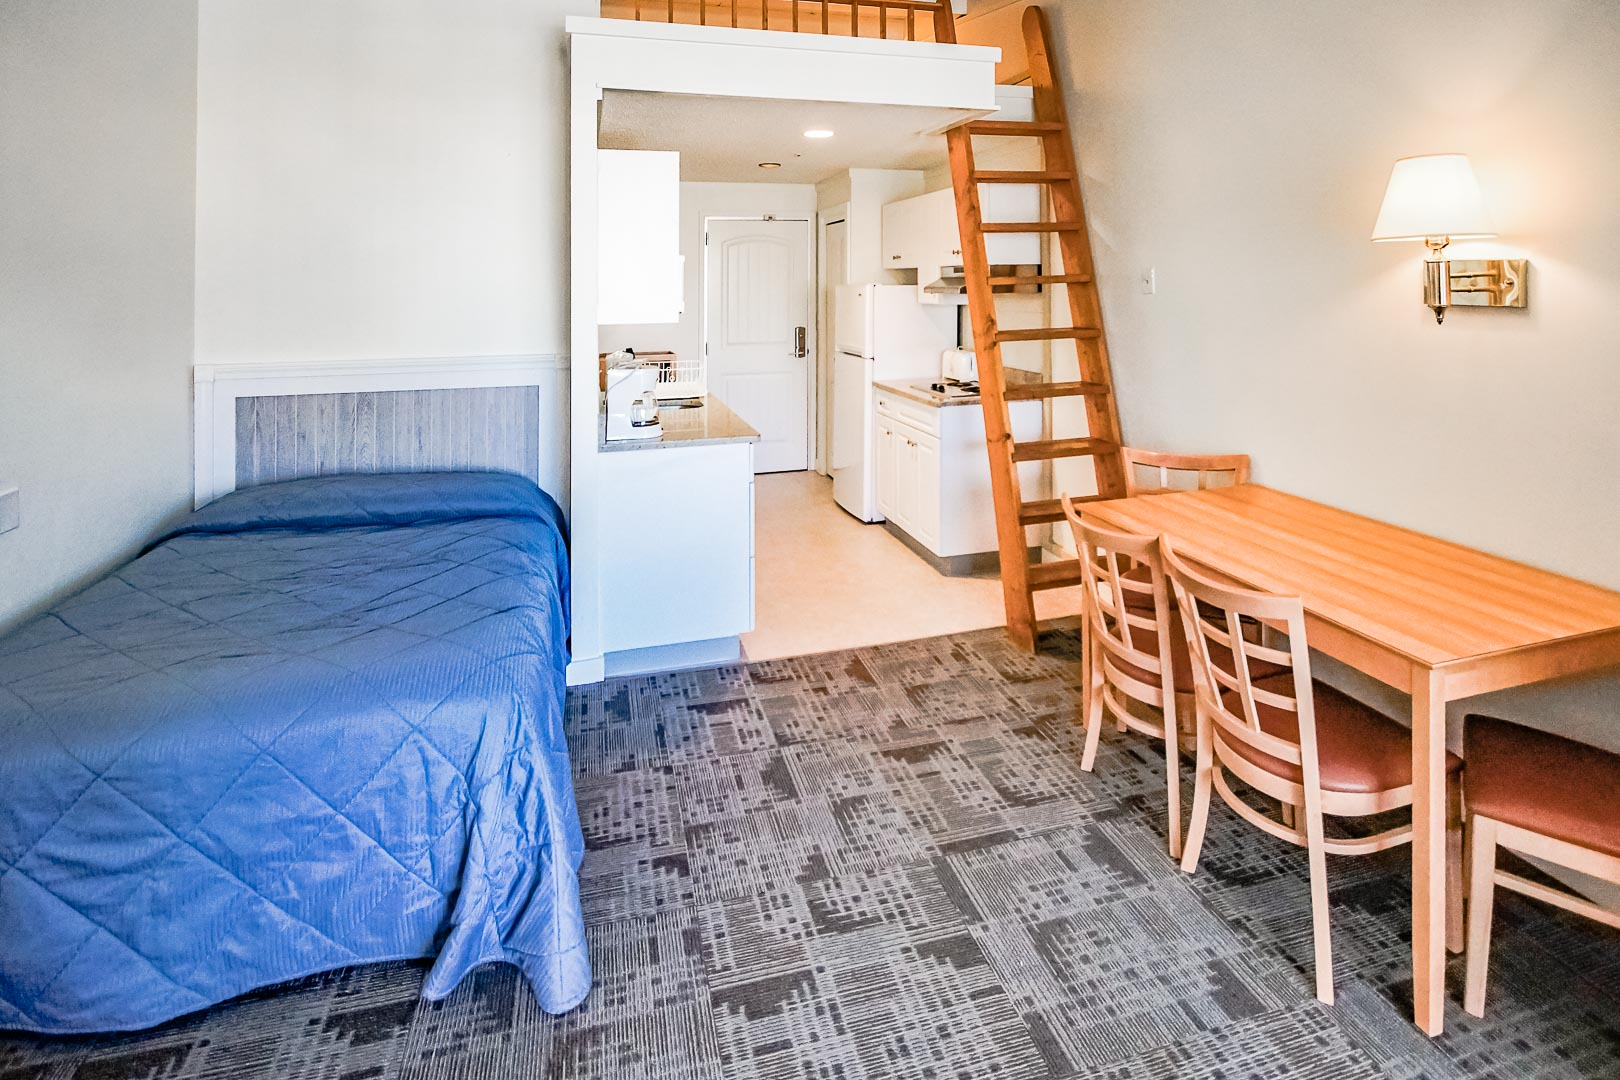 A traditional One bedroom loft at VRI's Courtyard Resort in Massachusetts.